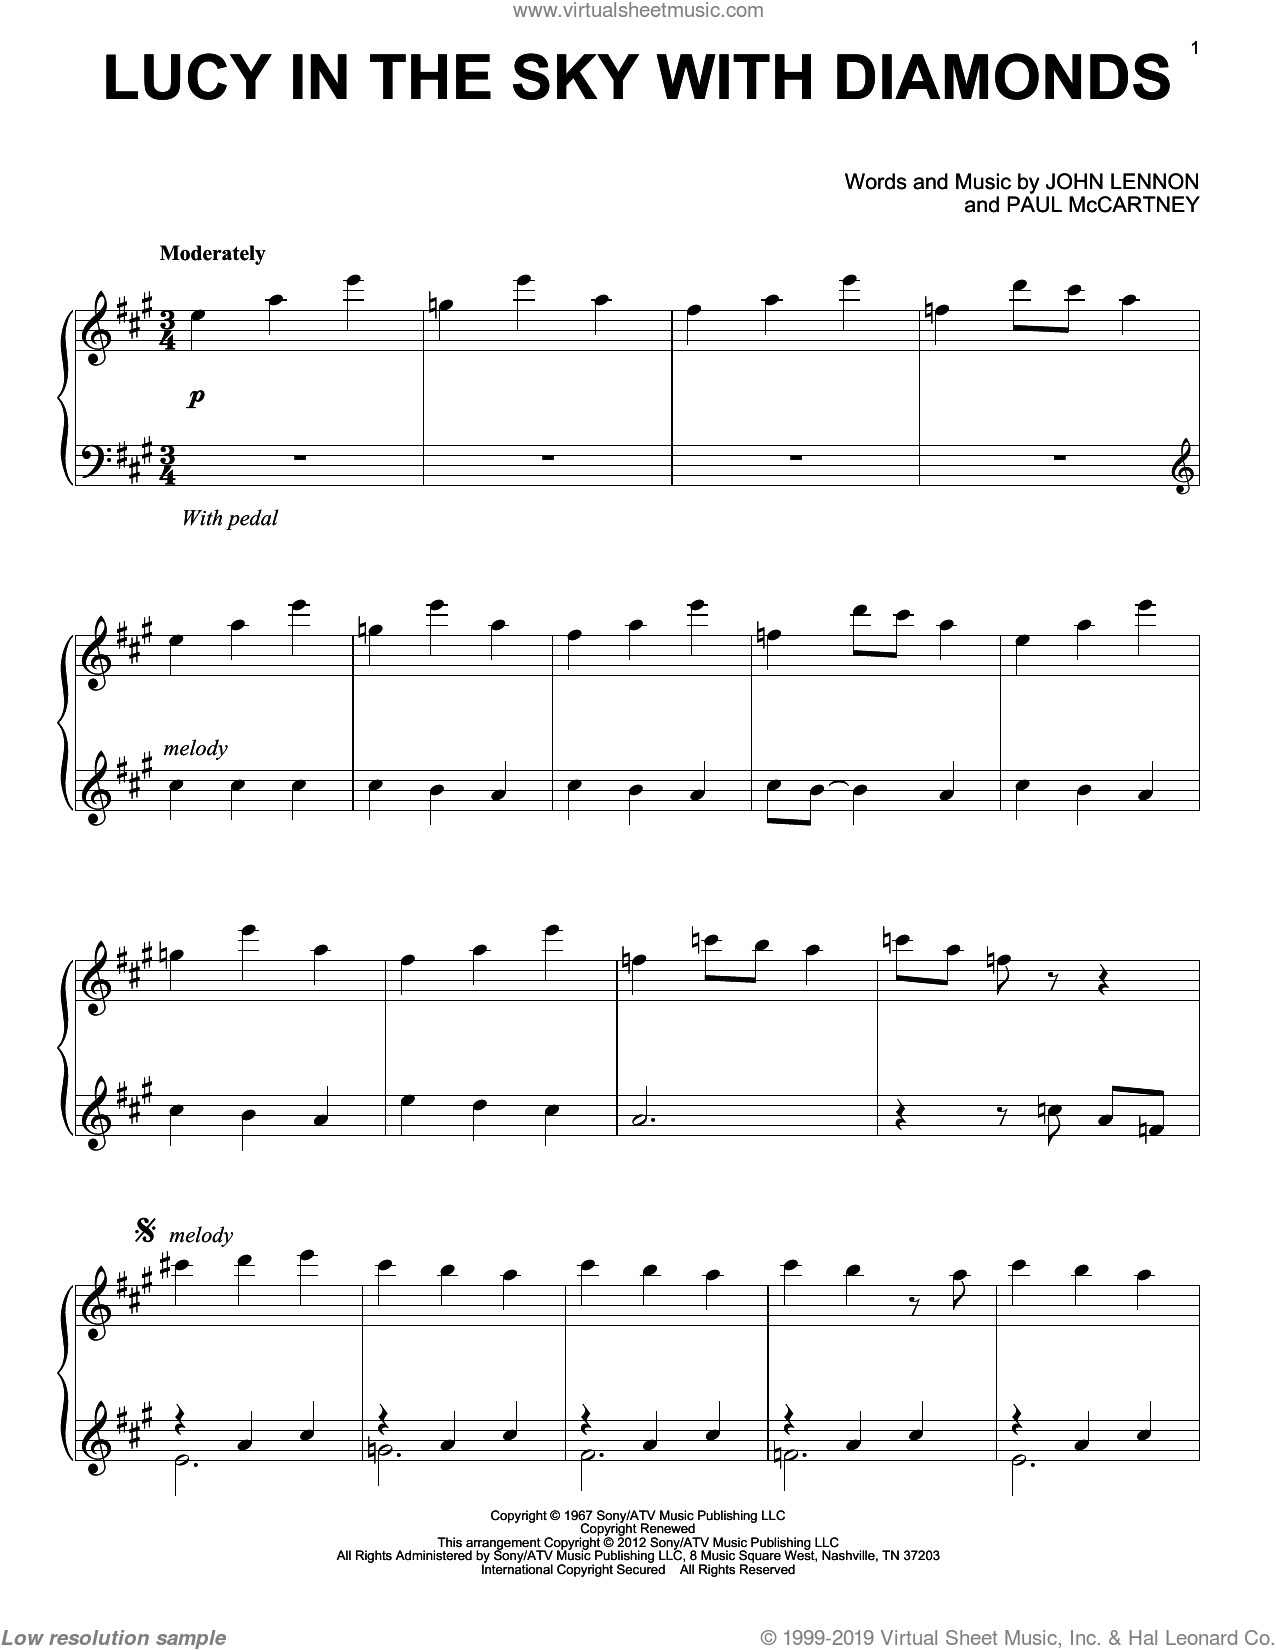 Lucy In The Sky With Diamonds sheet music for piano solo by The Beatles, John Lennon and Paul McCartney, intermediate skill level